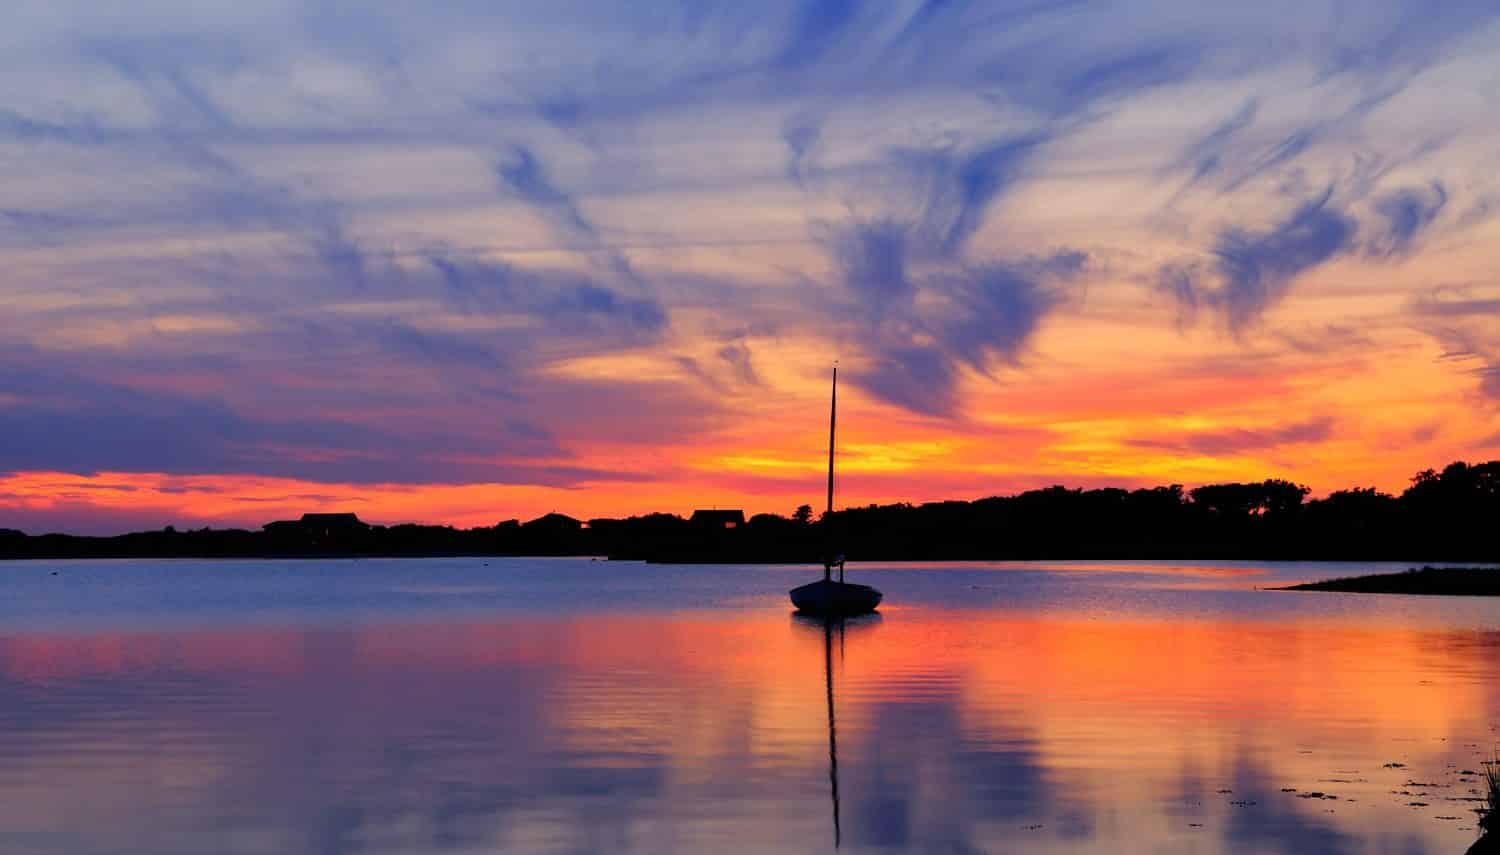 Sunset at Martha's Vineyard, showing one of the best destinations for Cape Cod day trips